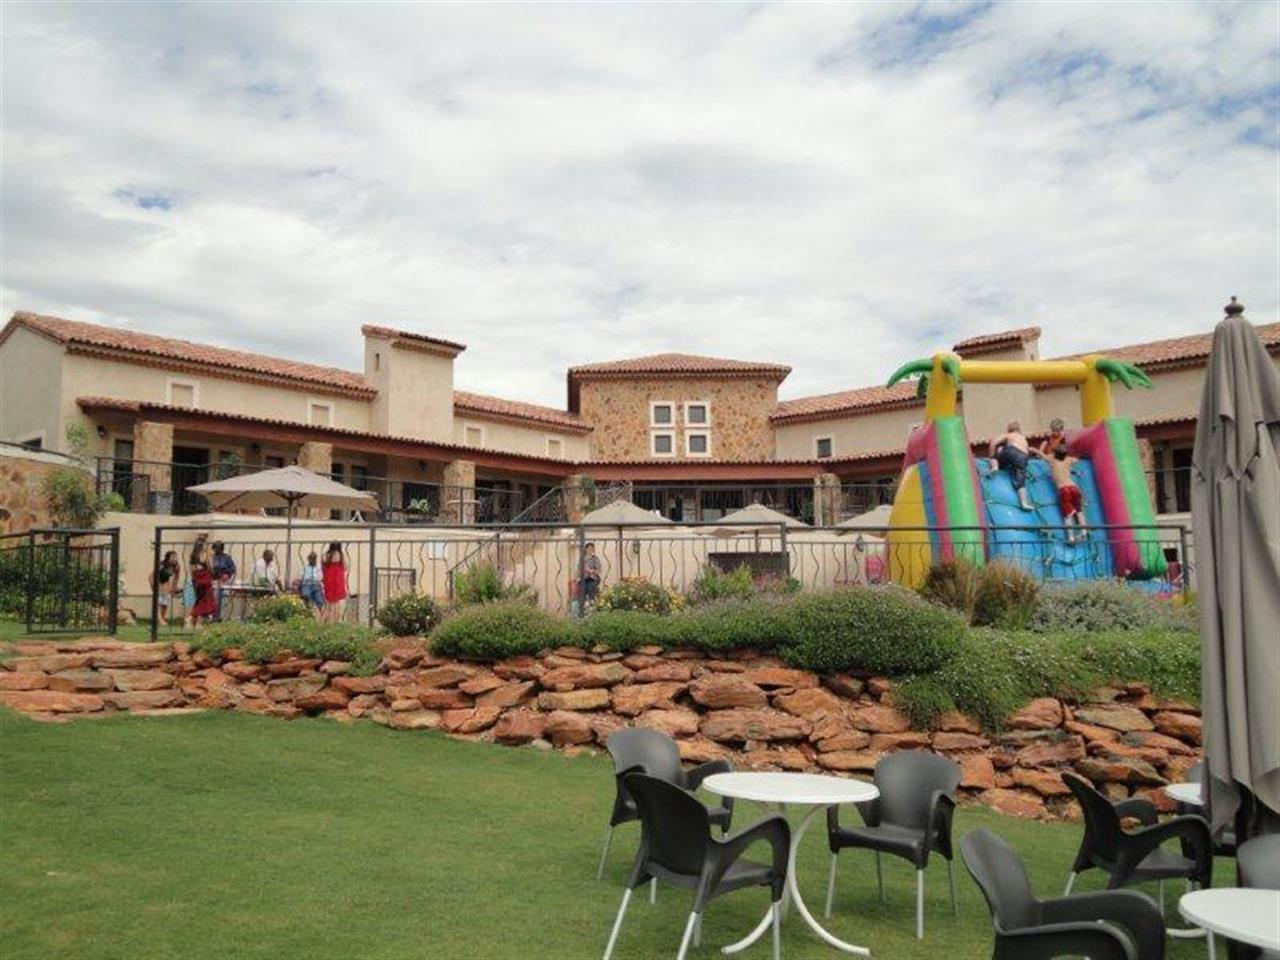 Gardens and childrens play area Estate d' Afrique, Hartbeespoort Dam, South Africa